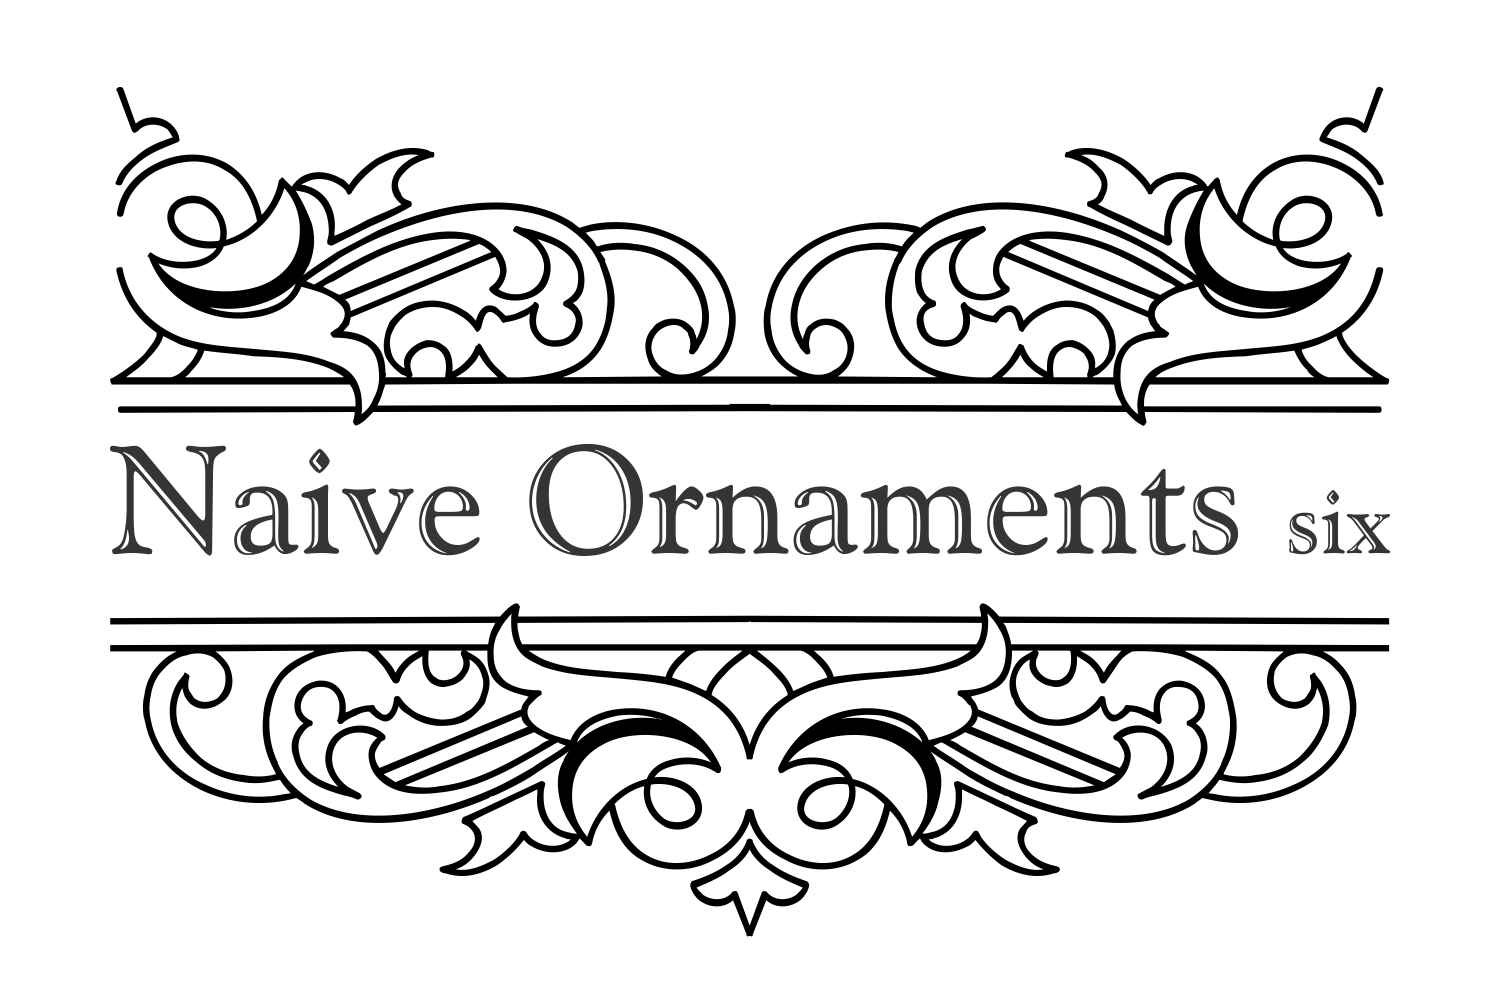 Naive Ornaments Six example image 5